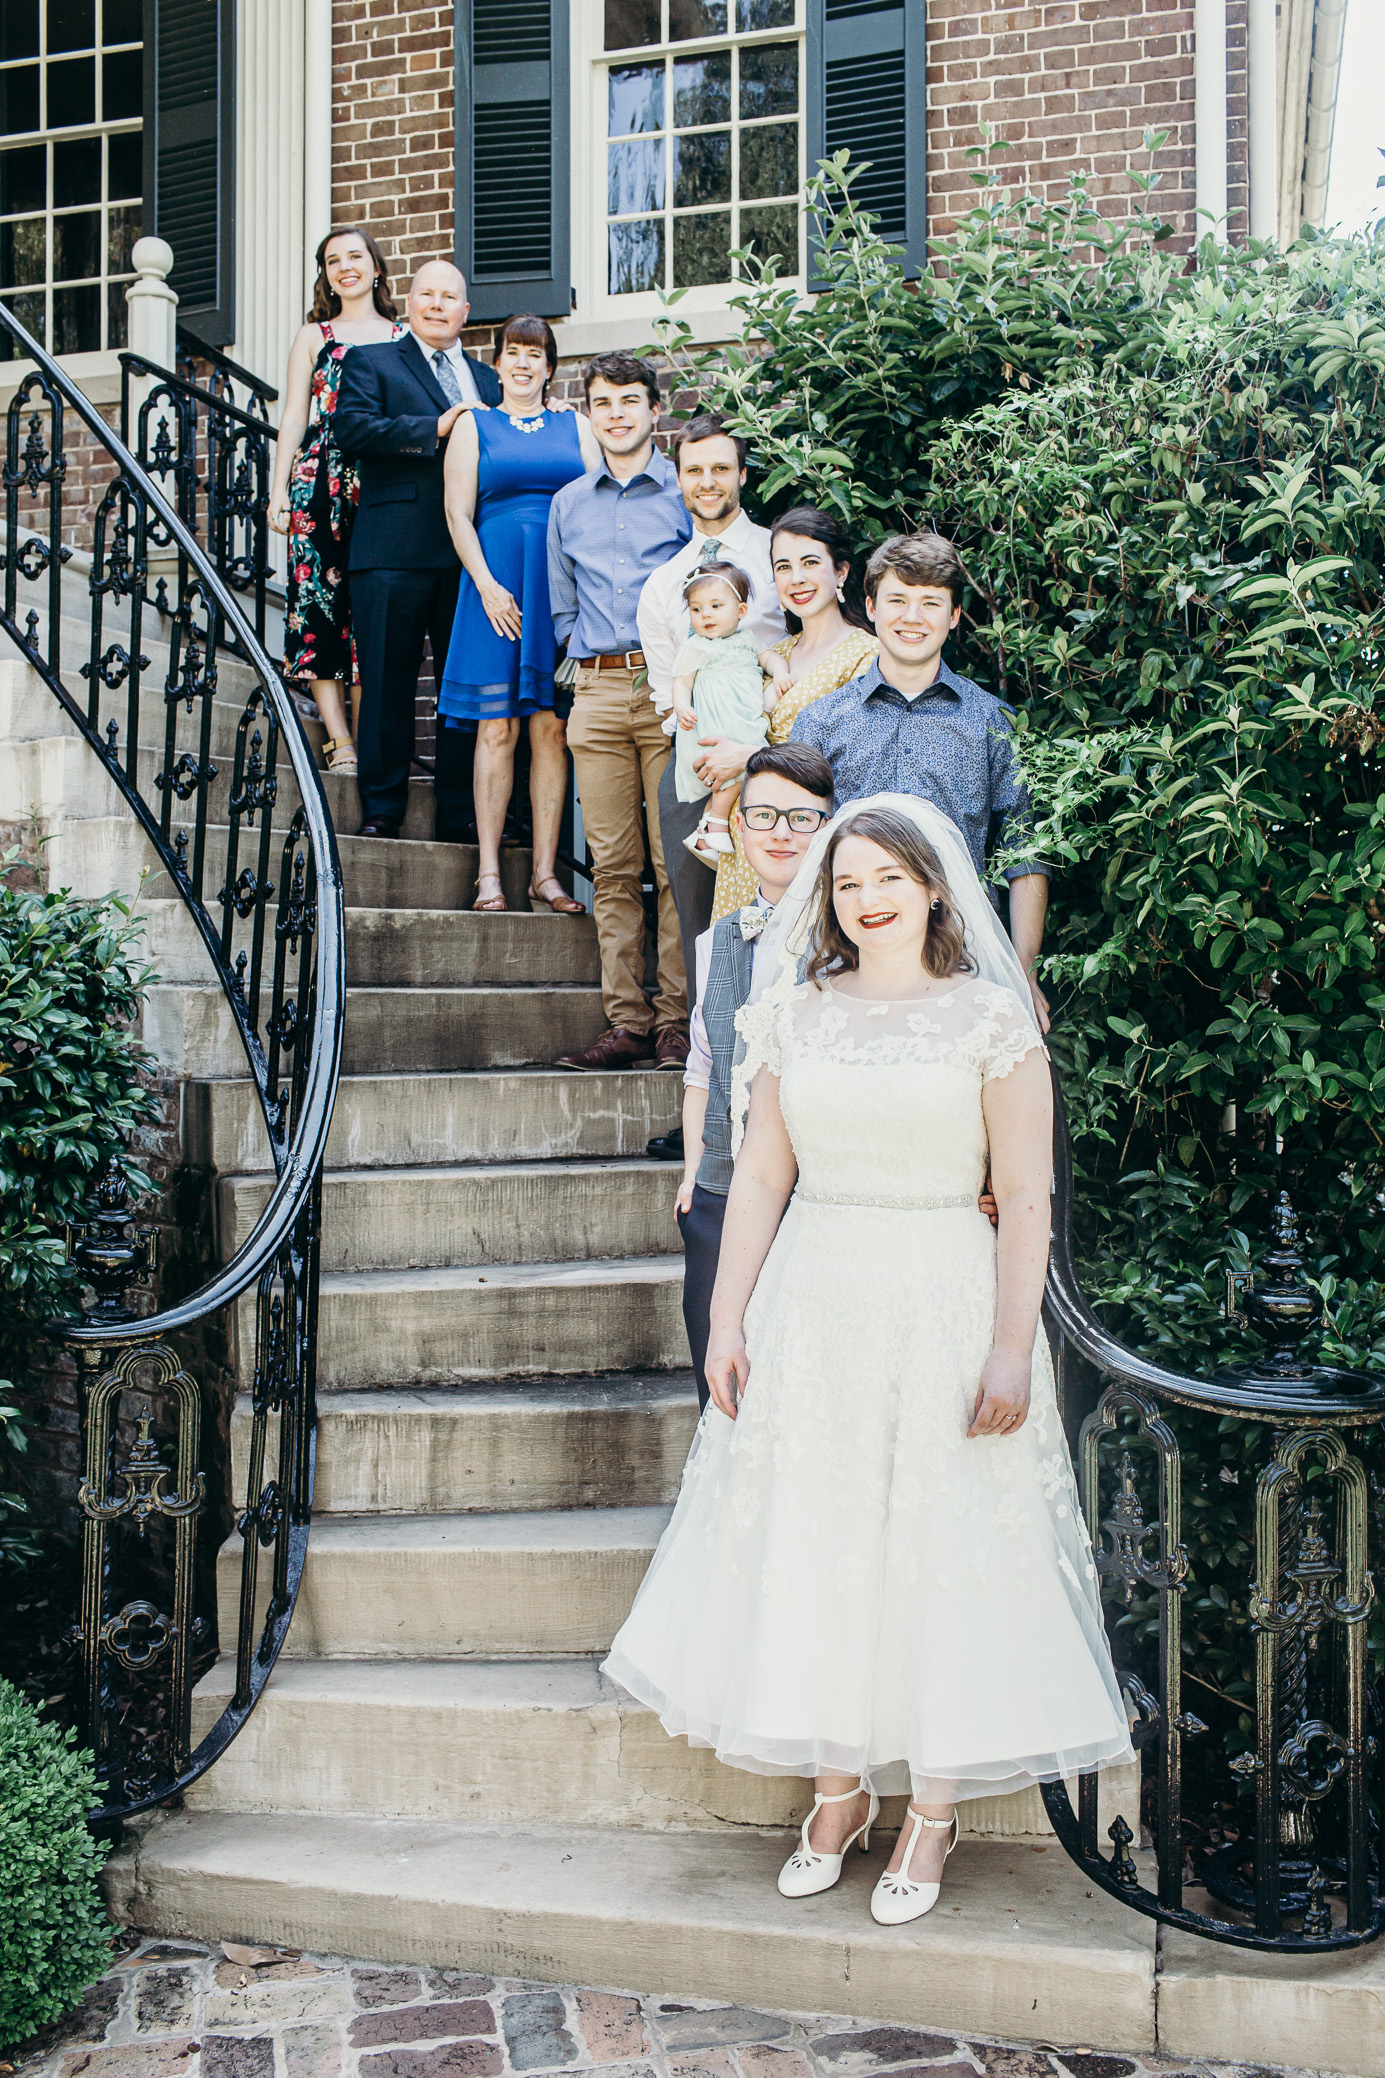 Tuscaloosa Alabama wedding photography at The University of Alabama, Grace Presbyterian Church, and The District Room by David A. Smith of DSmithImages Wedding Photography, Portraits, and Events, a wedding photographer in Birmingham, Alabama